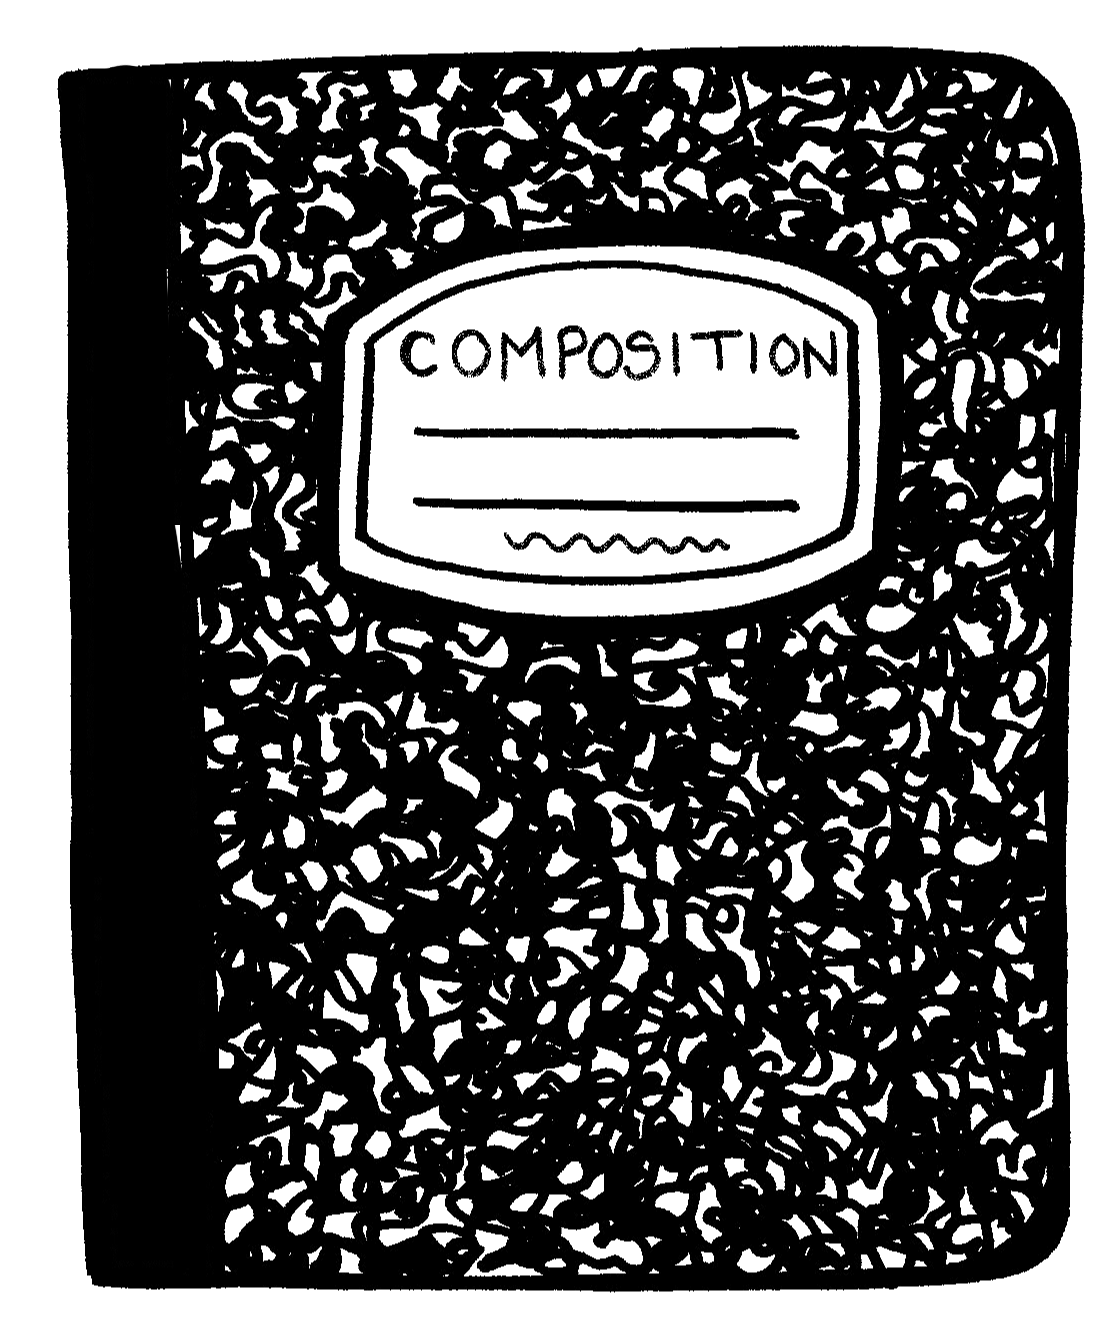 Composition journal clipart.